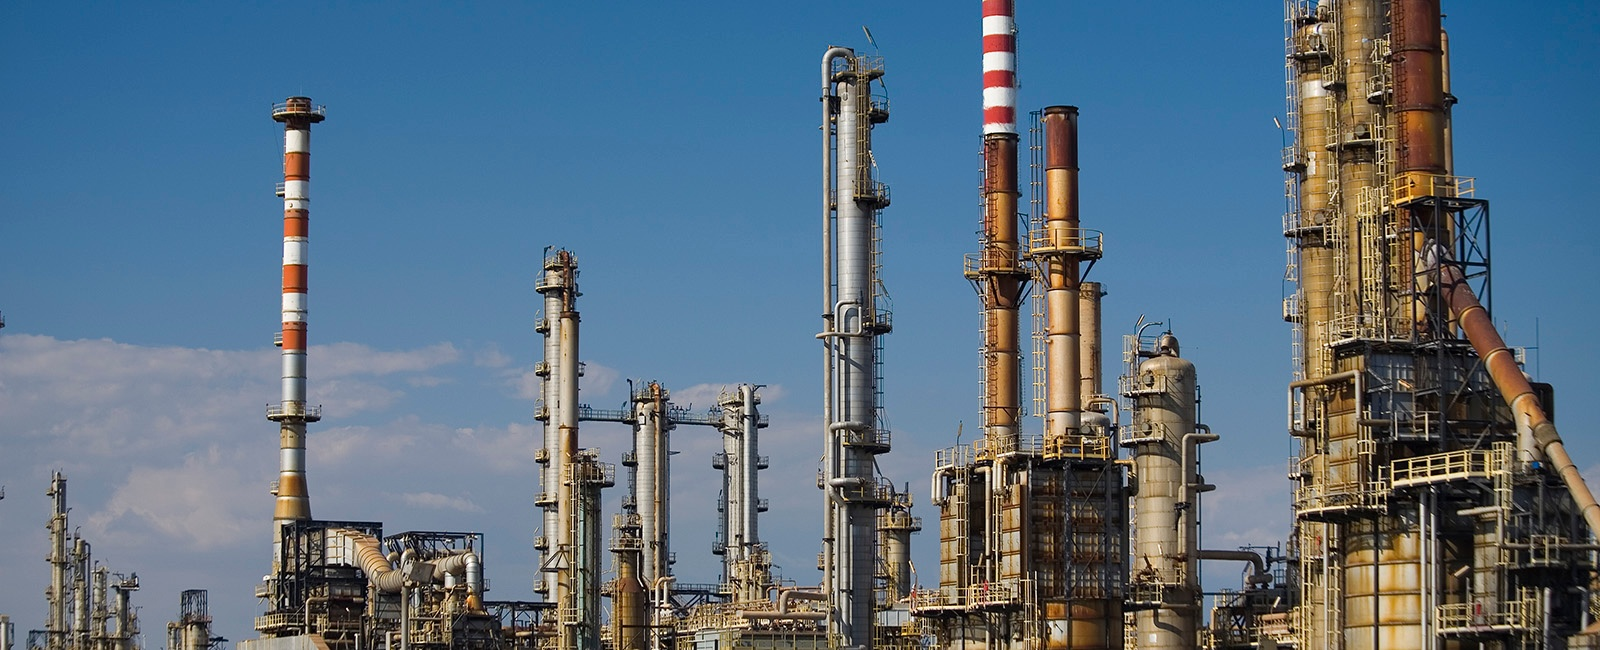 Oil Refinery Uses Industrial Wireless For Remote Monitoring